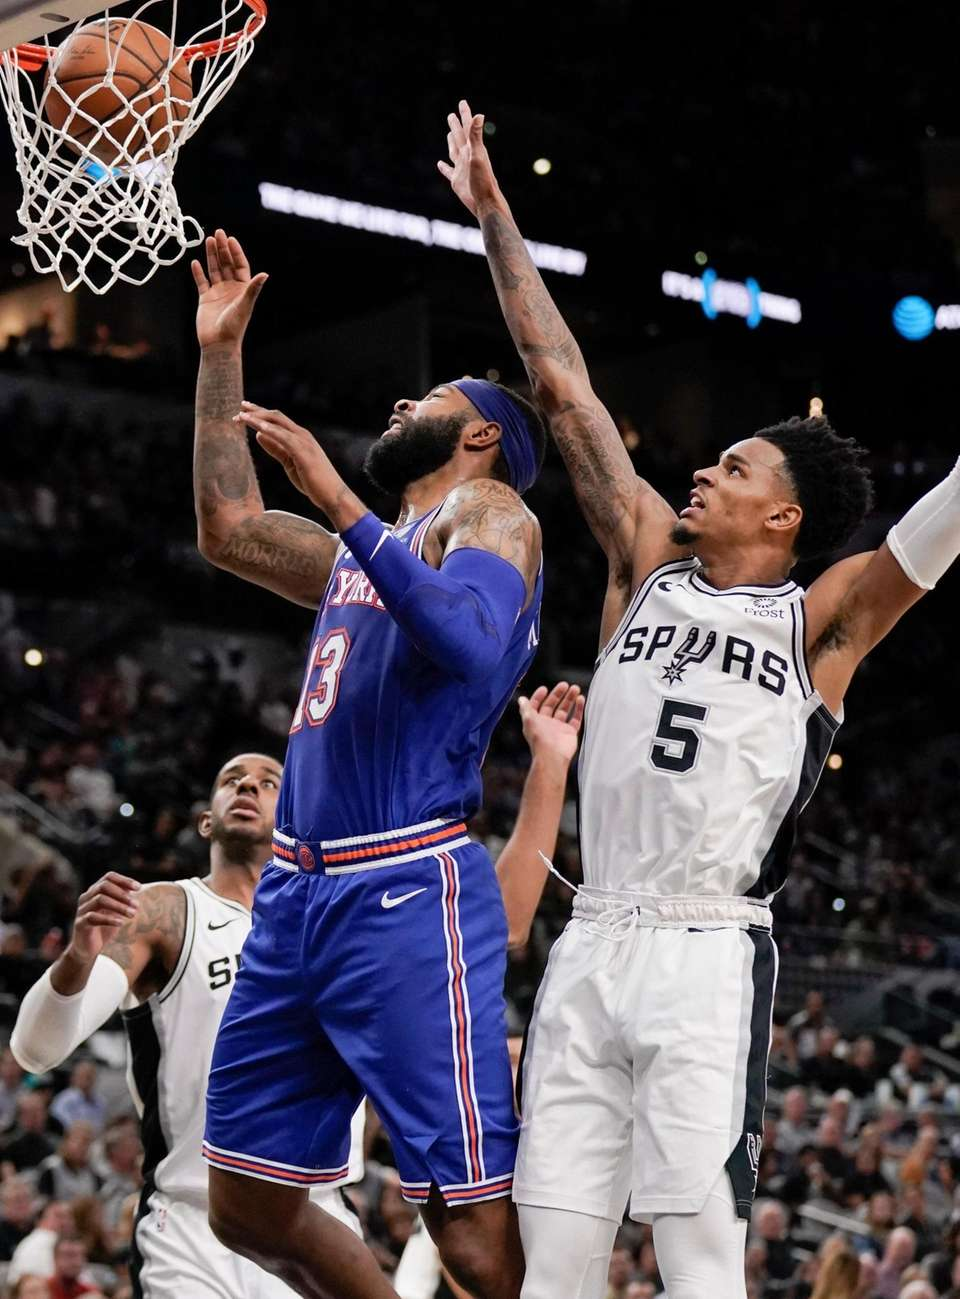 The Knicks' Marcus Morris scores as he is